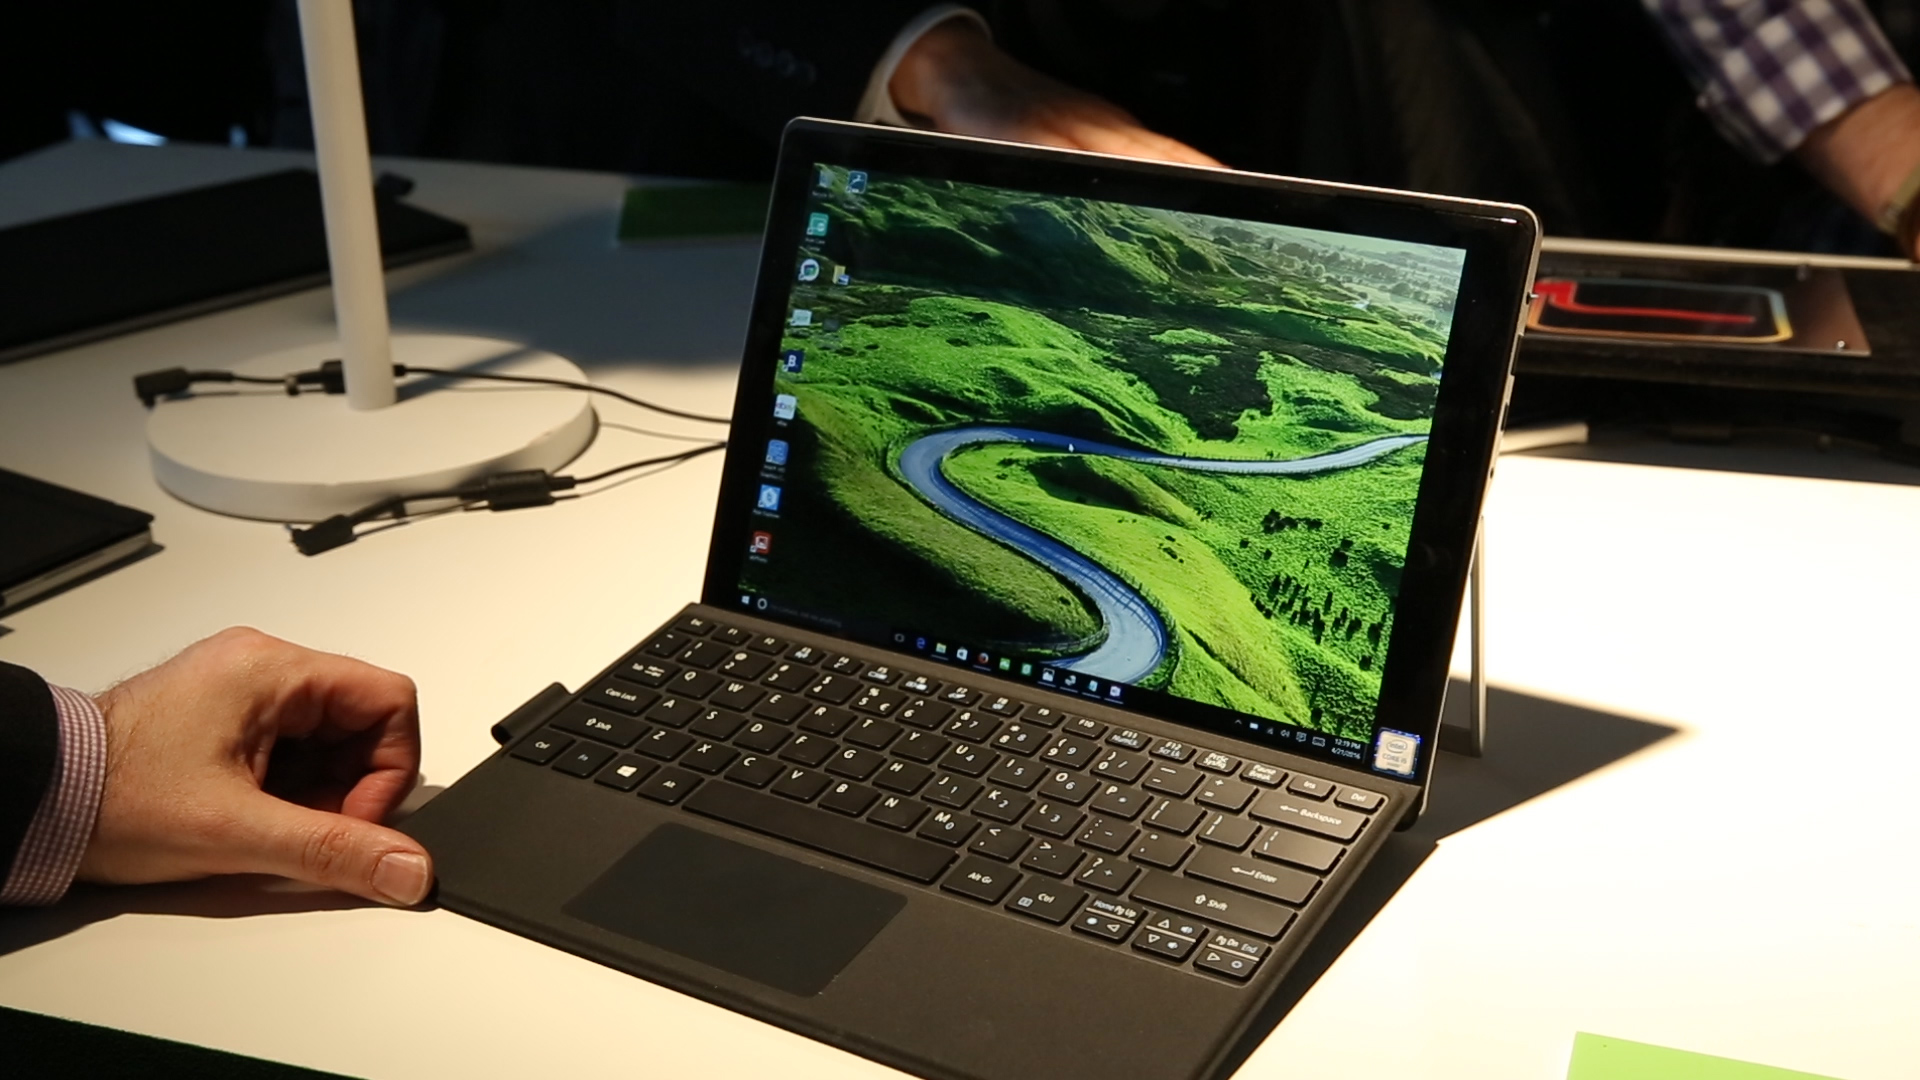 Video: No fans in the liquid-cooled Acer Switch Alpha 12 hybrid